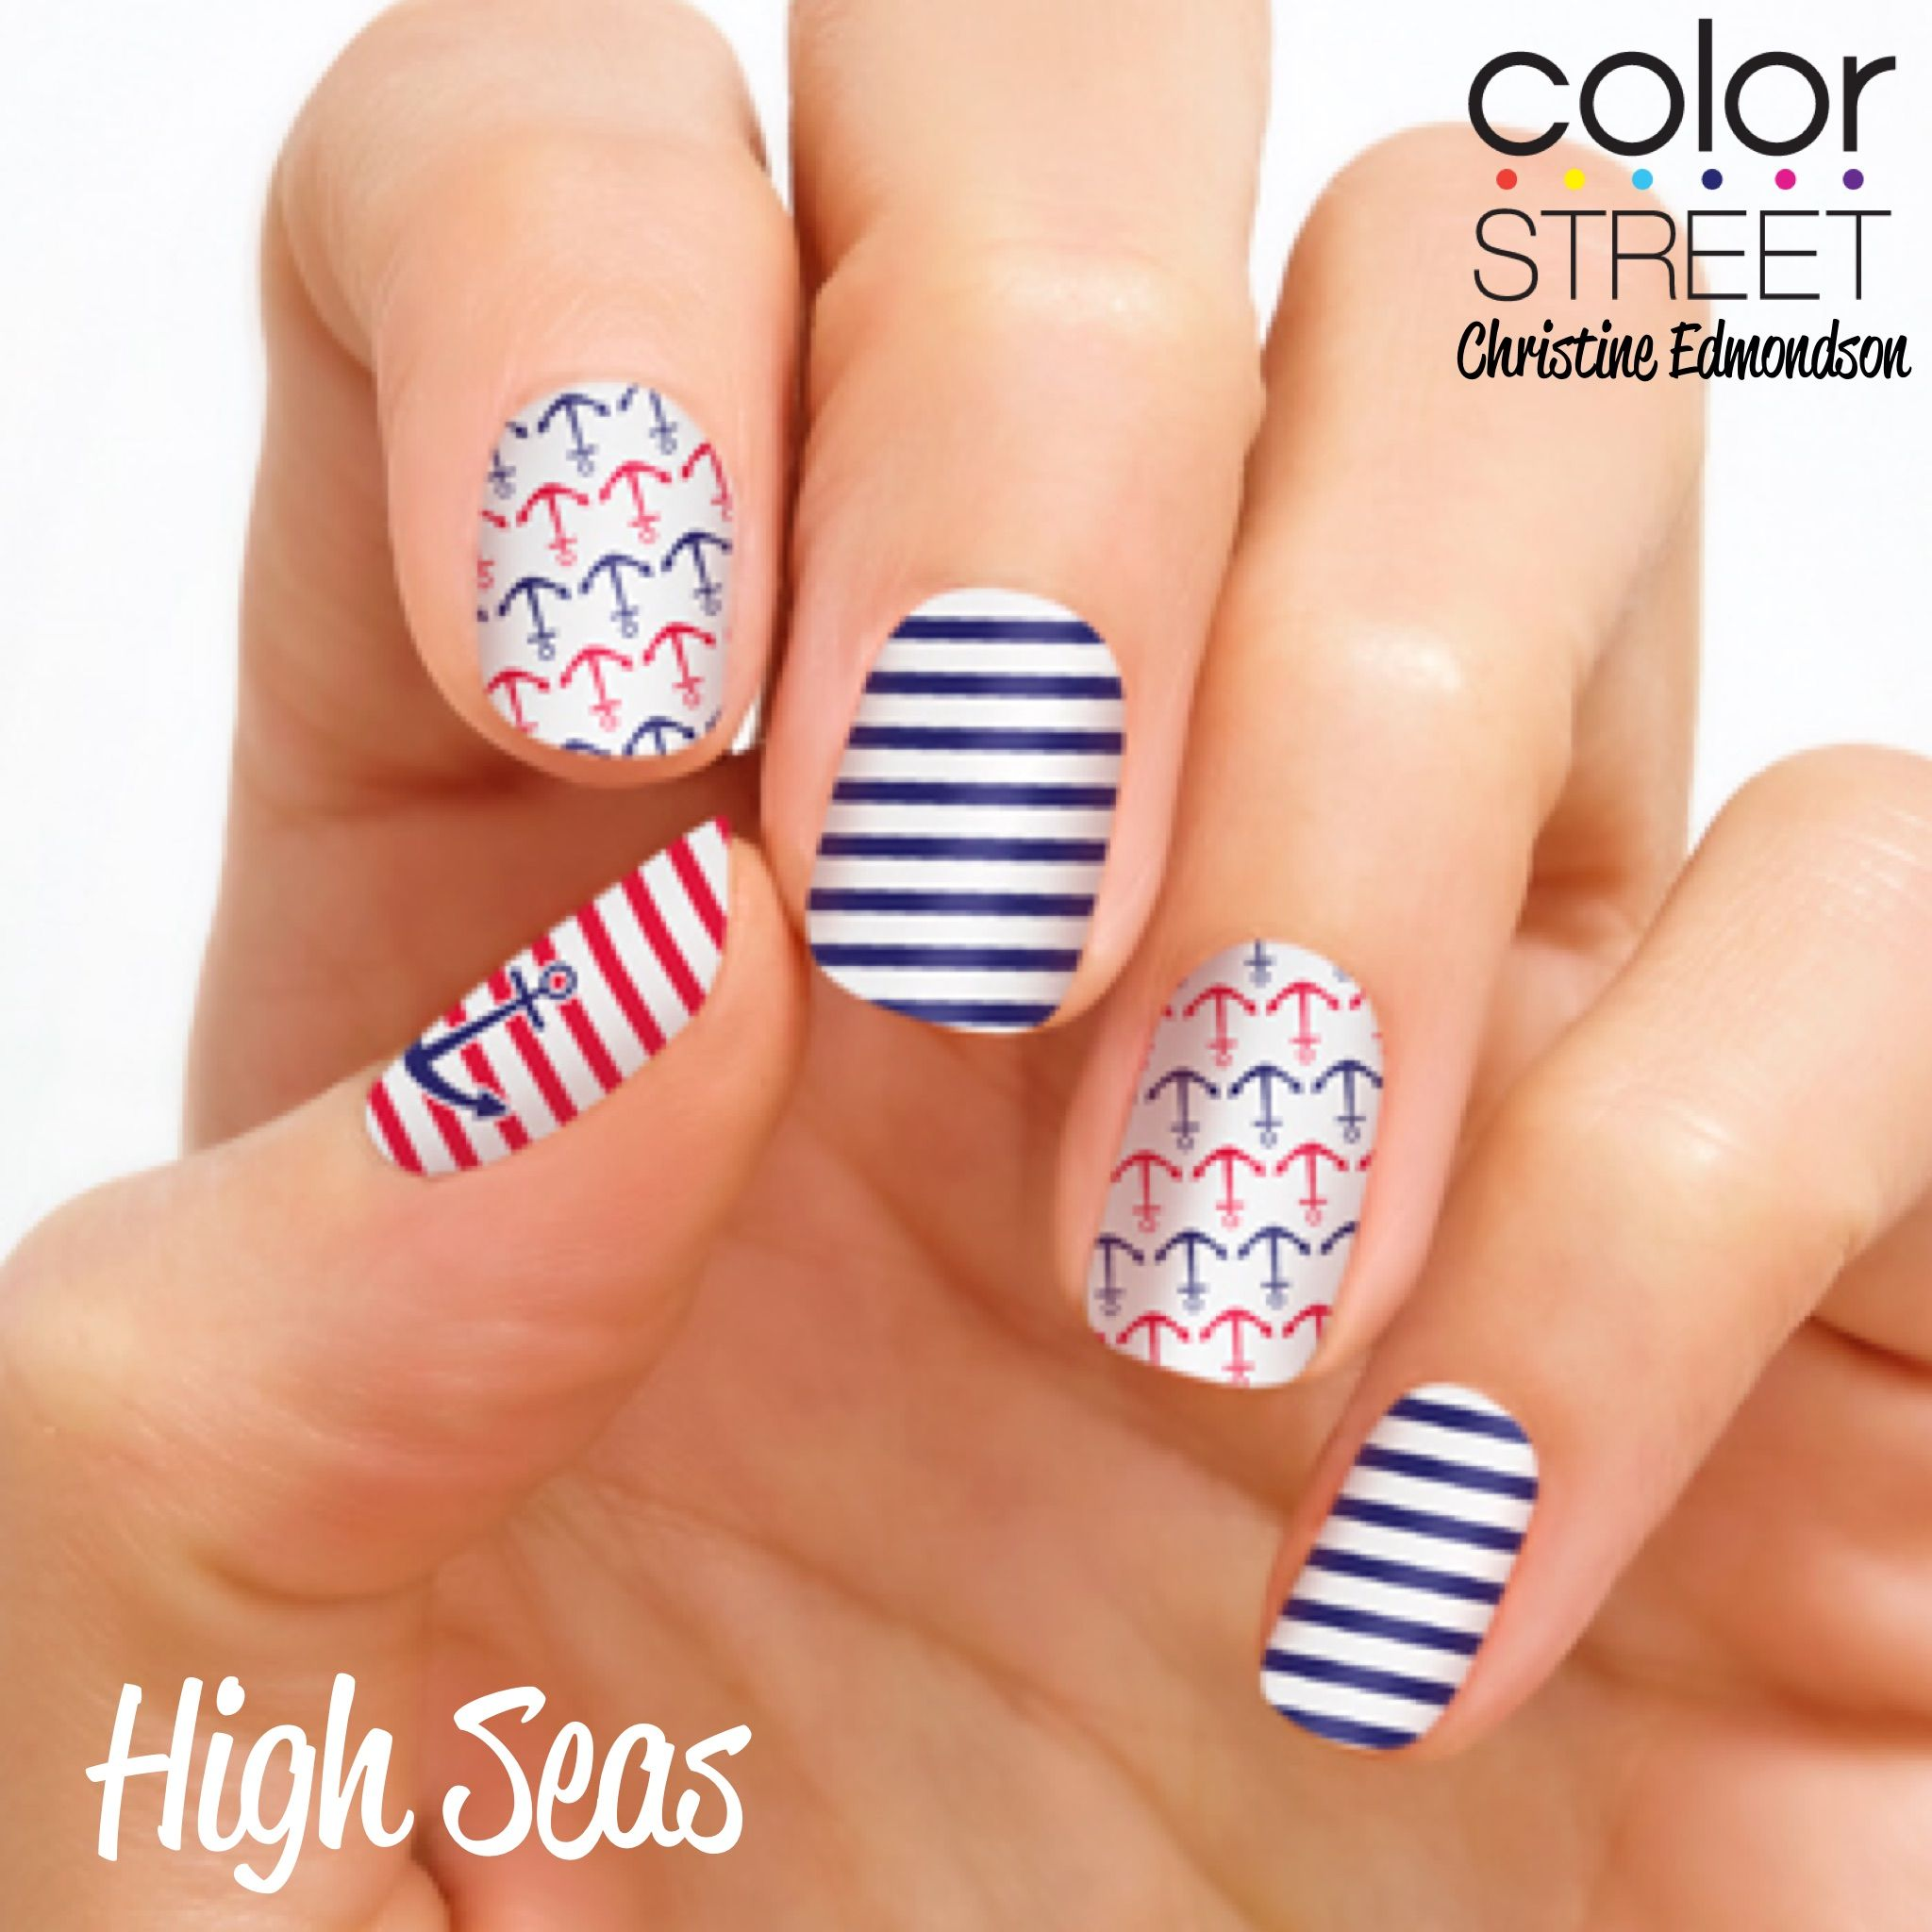 High Seas 100 Nail Polish Strips That Require No Tools No Heat No Drying Time No Mess Get Gorgeous Nails In 10 Minu Nails Stick On Nails Nautical Nails